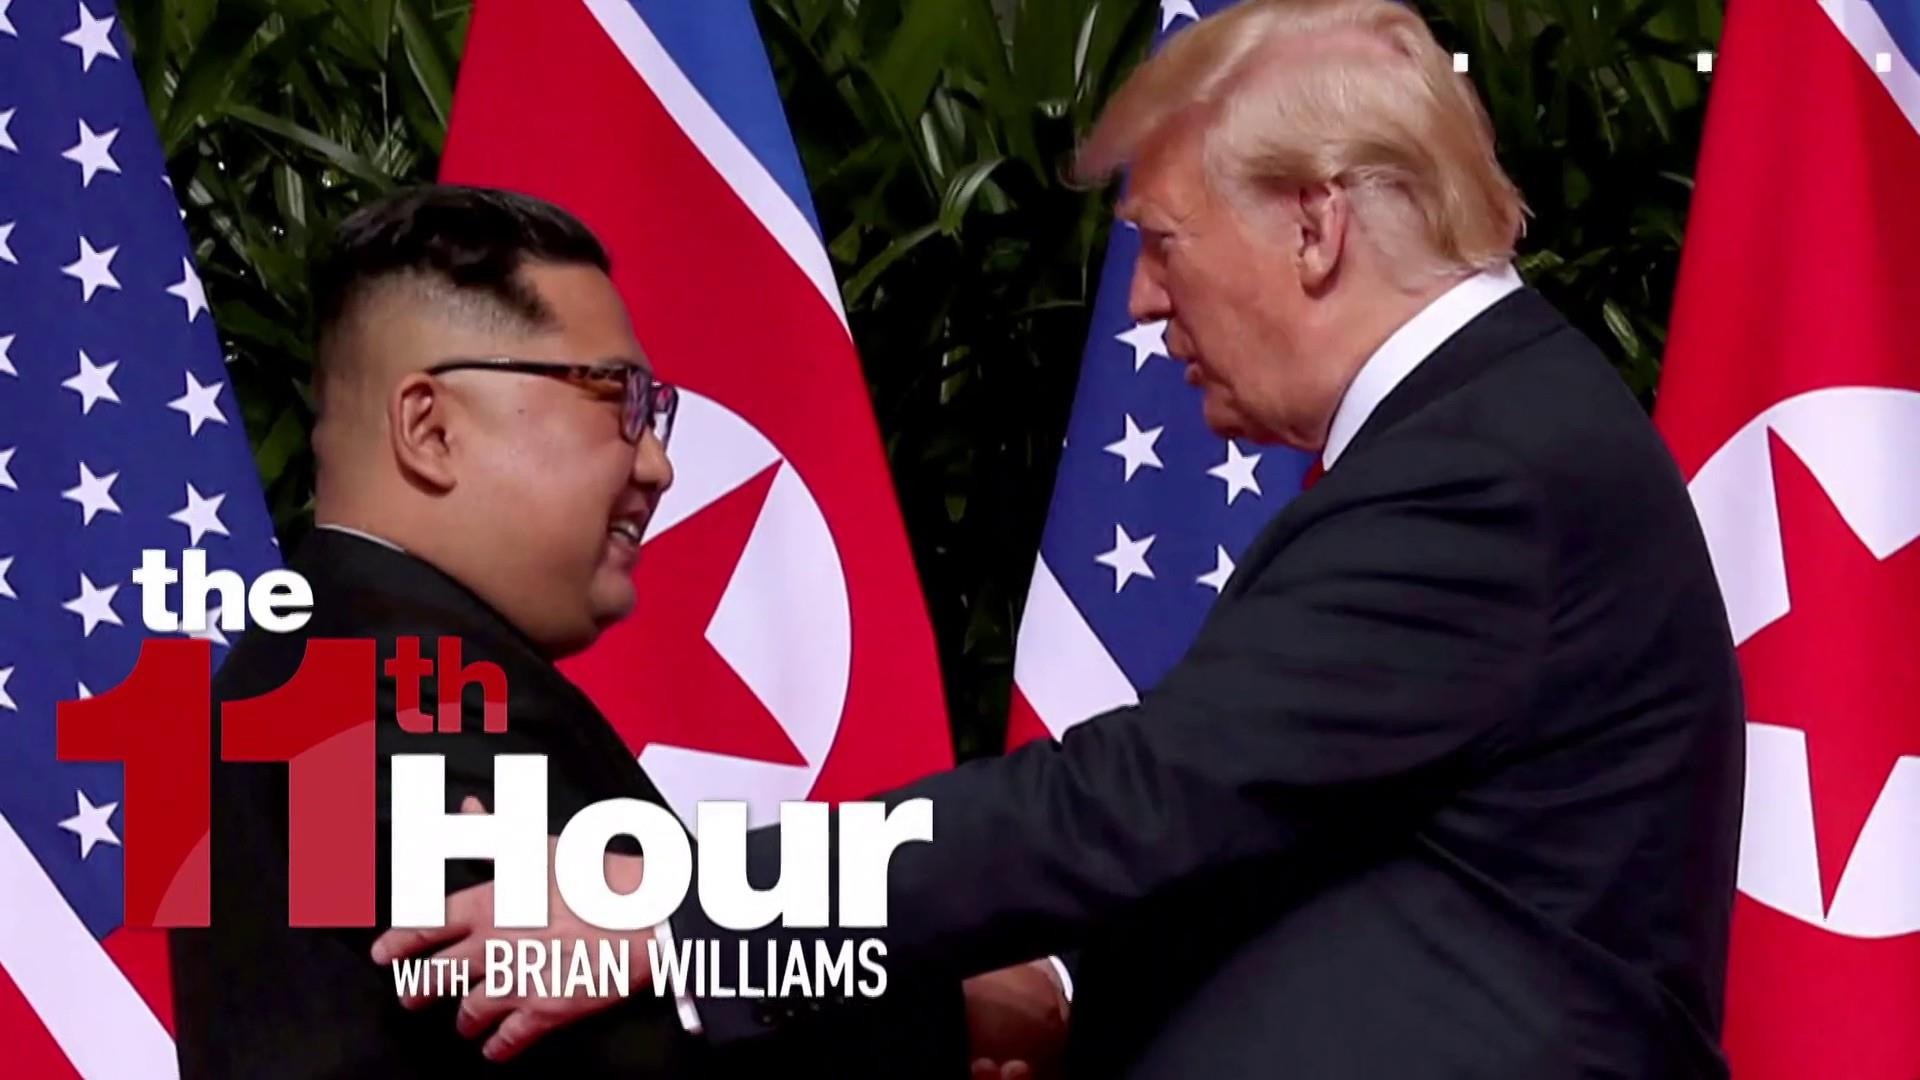 Kim wants another Trump summit, but is N. Korea really denuking?